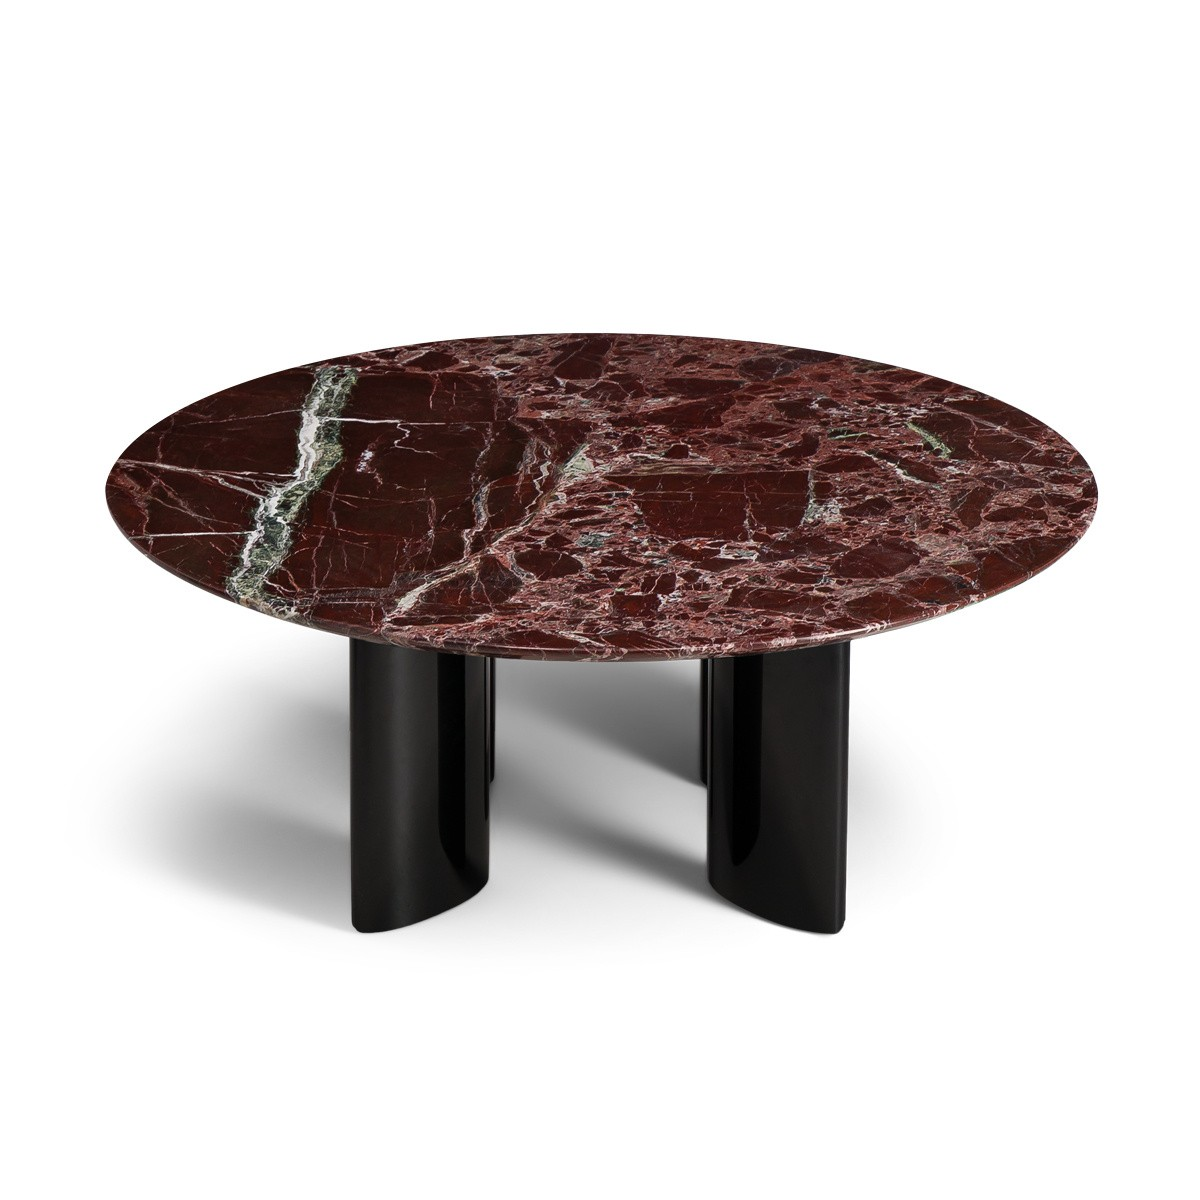 Carlotta Coffee Table, Black Lacquered Legs and Red Marble